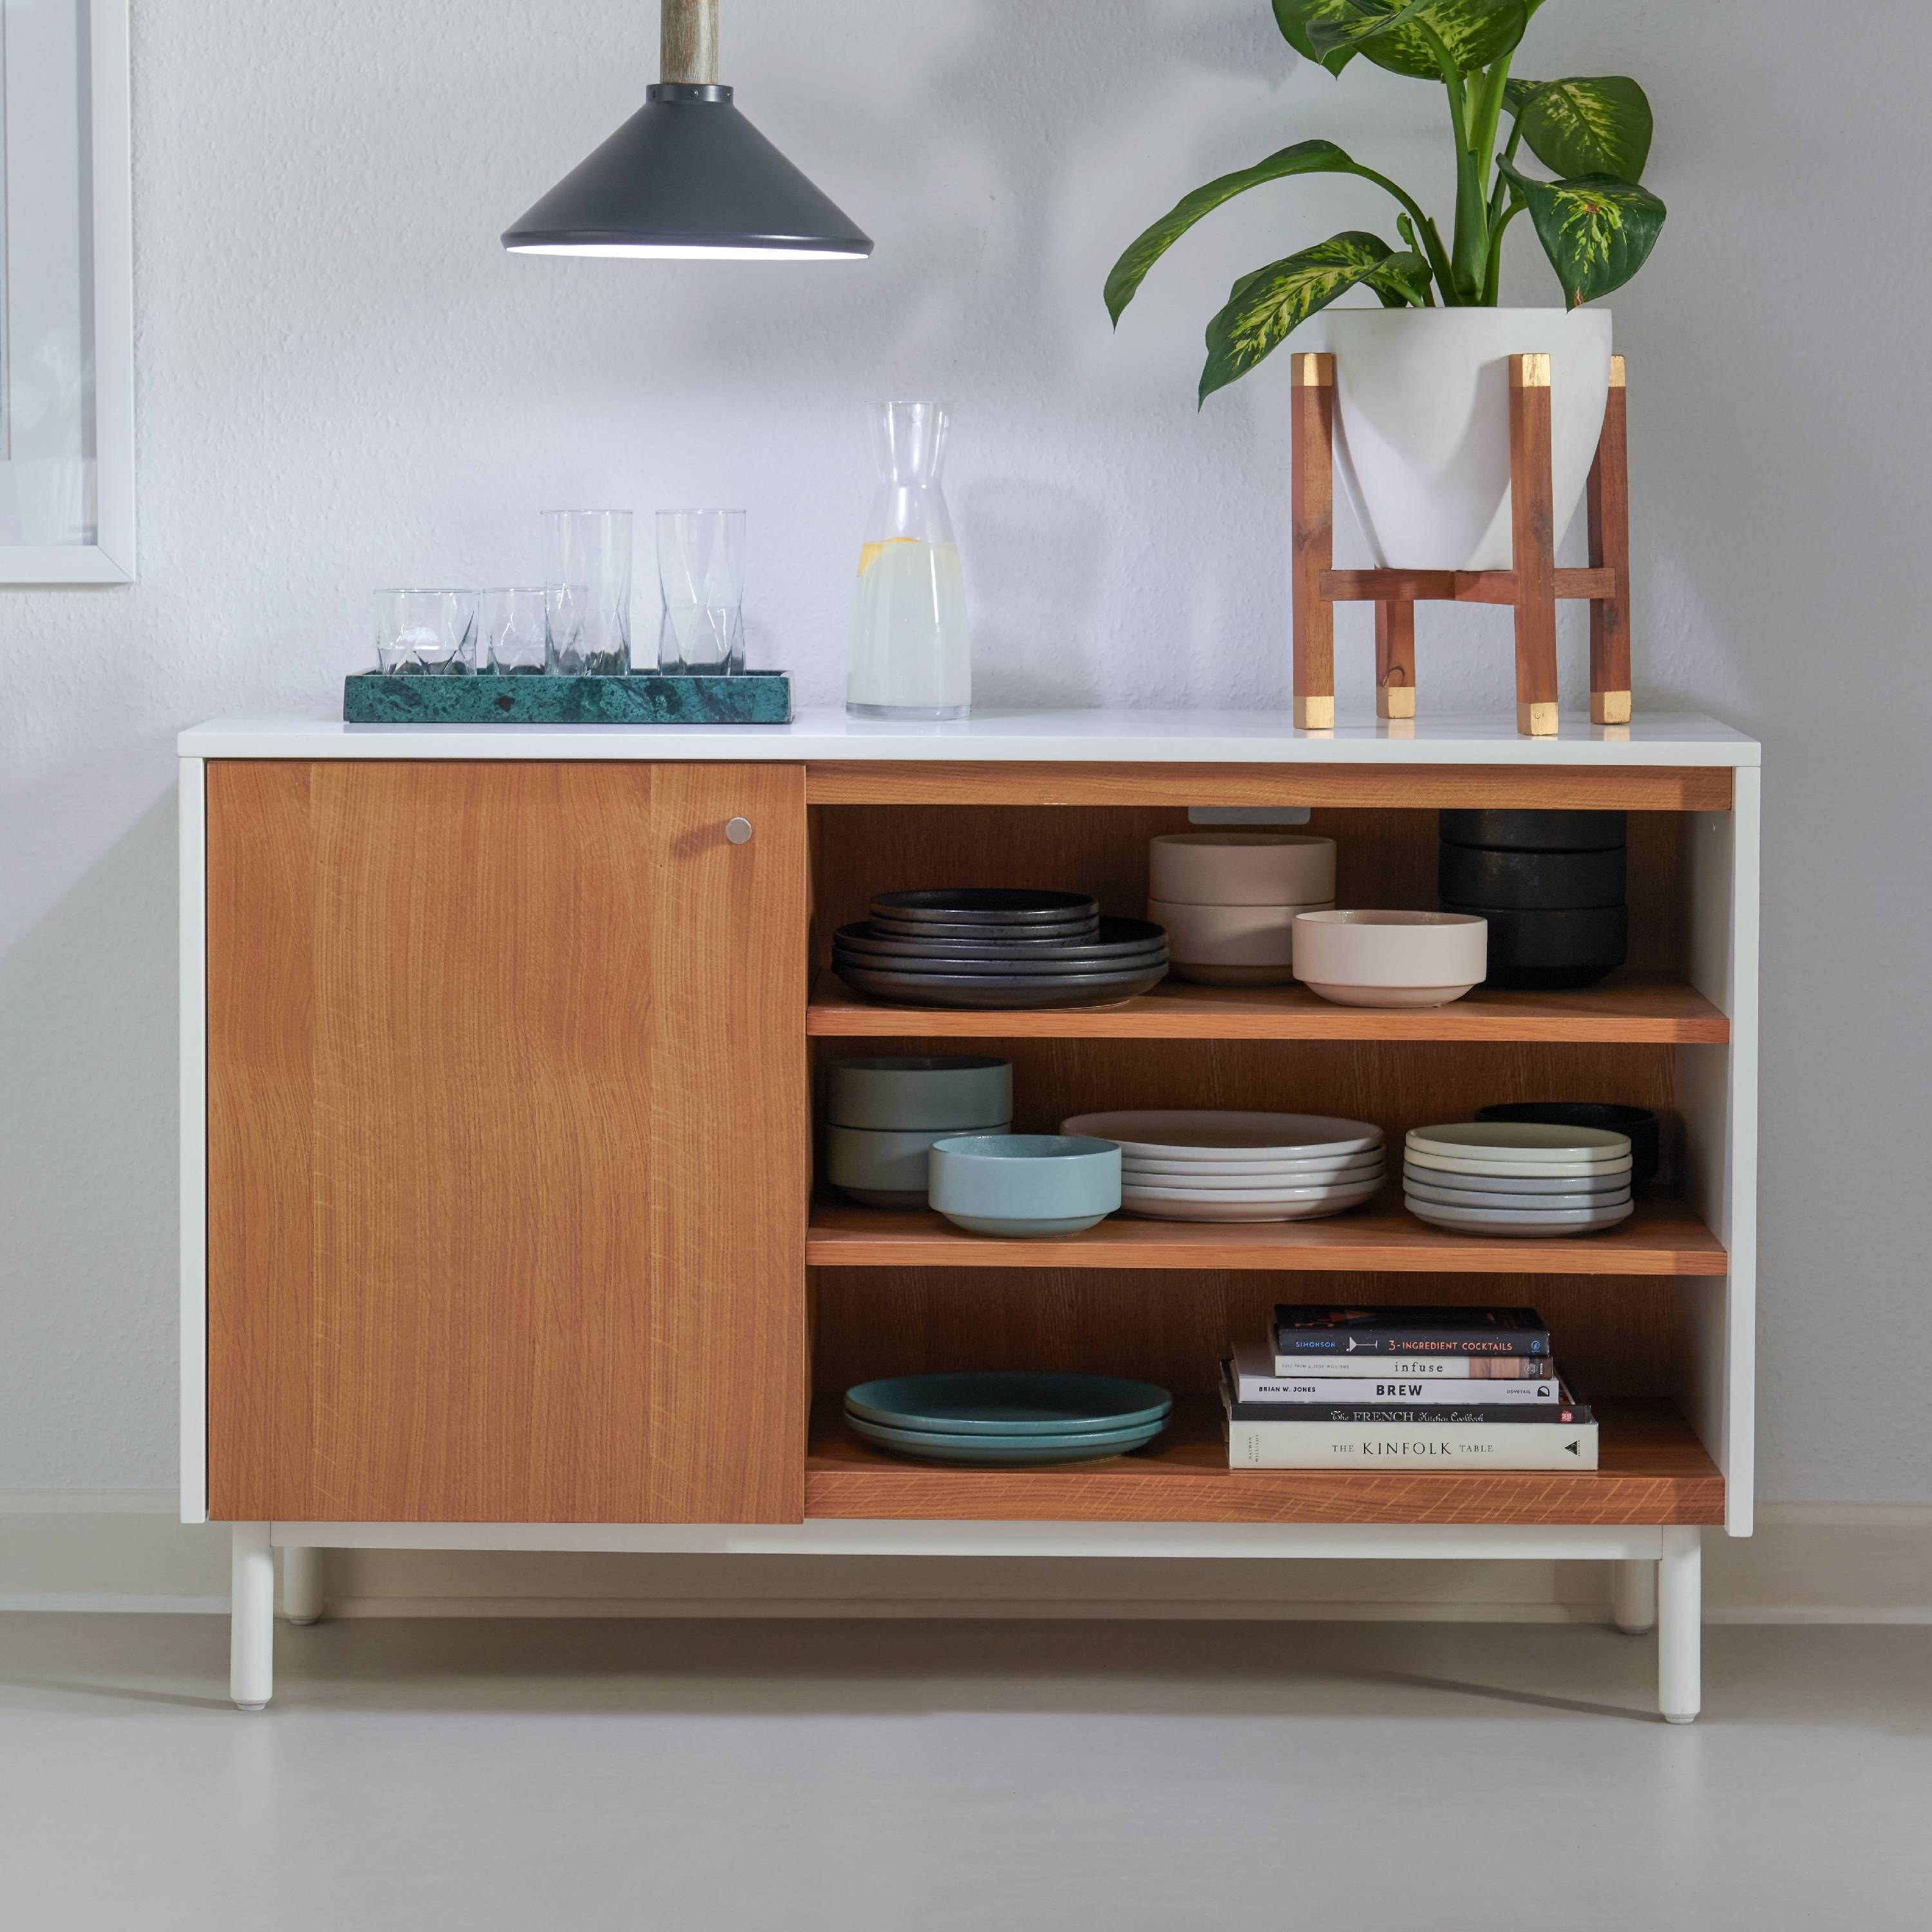 a credenza with a white exterior and table top and wooden medium brown cabinet and shelving